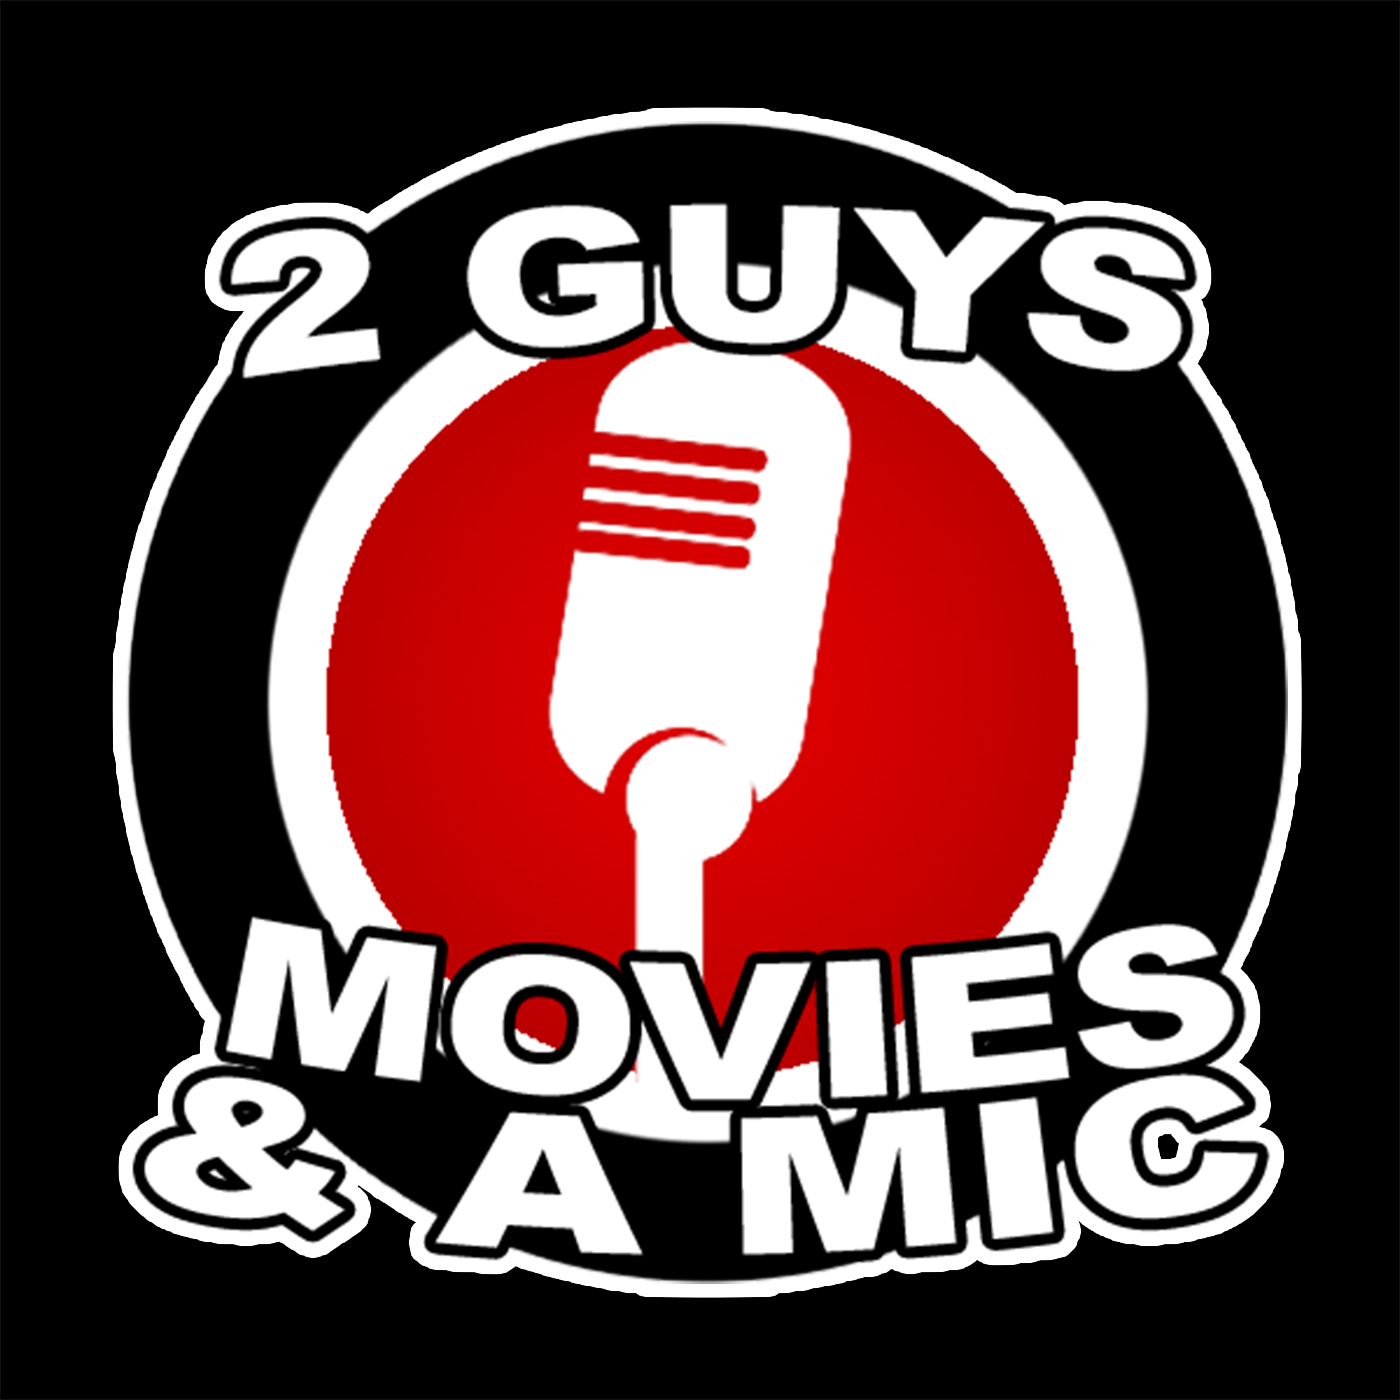 Podcasts – 2 Guys, Movies & a Mic